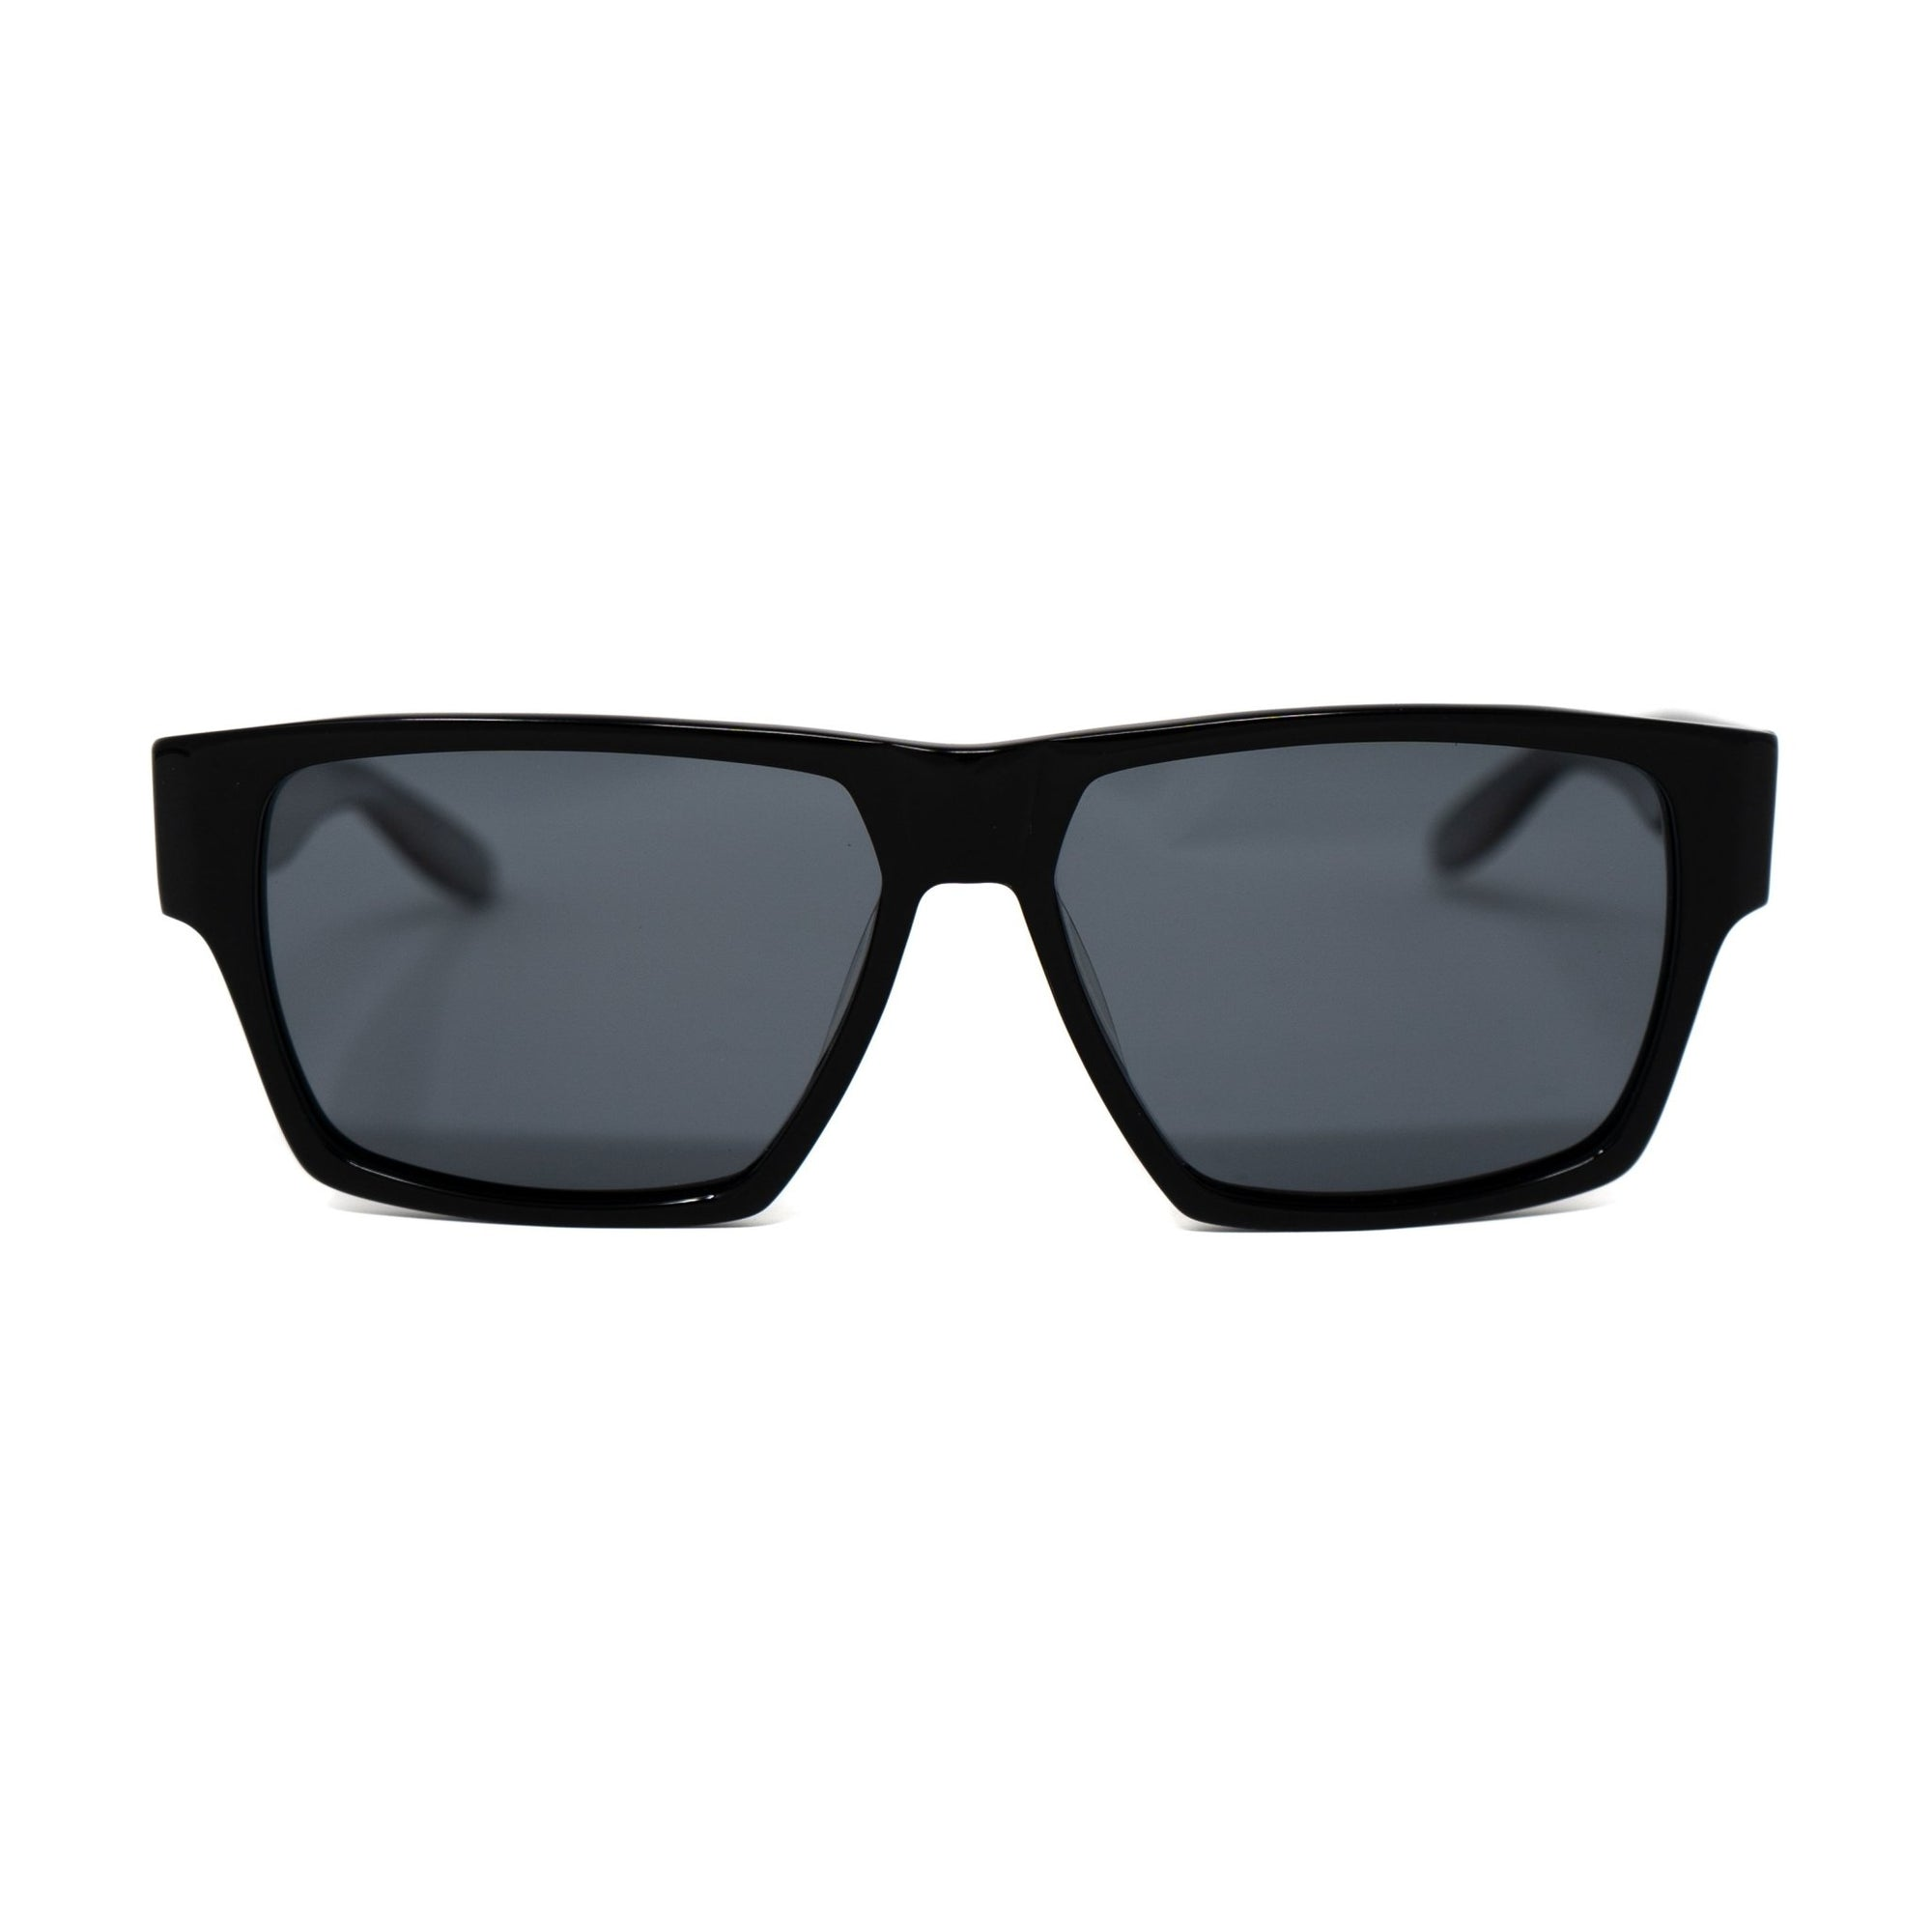 Buddhist Punk Sunglasses Rectangular Black Print With Grey Lenses Category 3 7BP6C2BLACKPRINT - Watches & Crystals